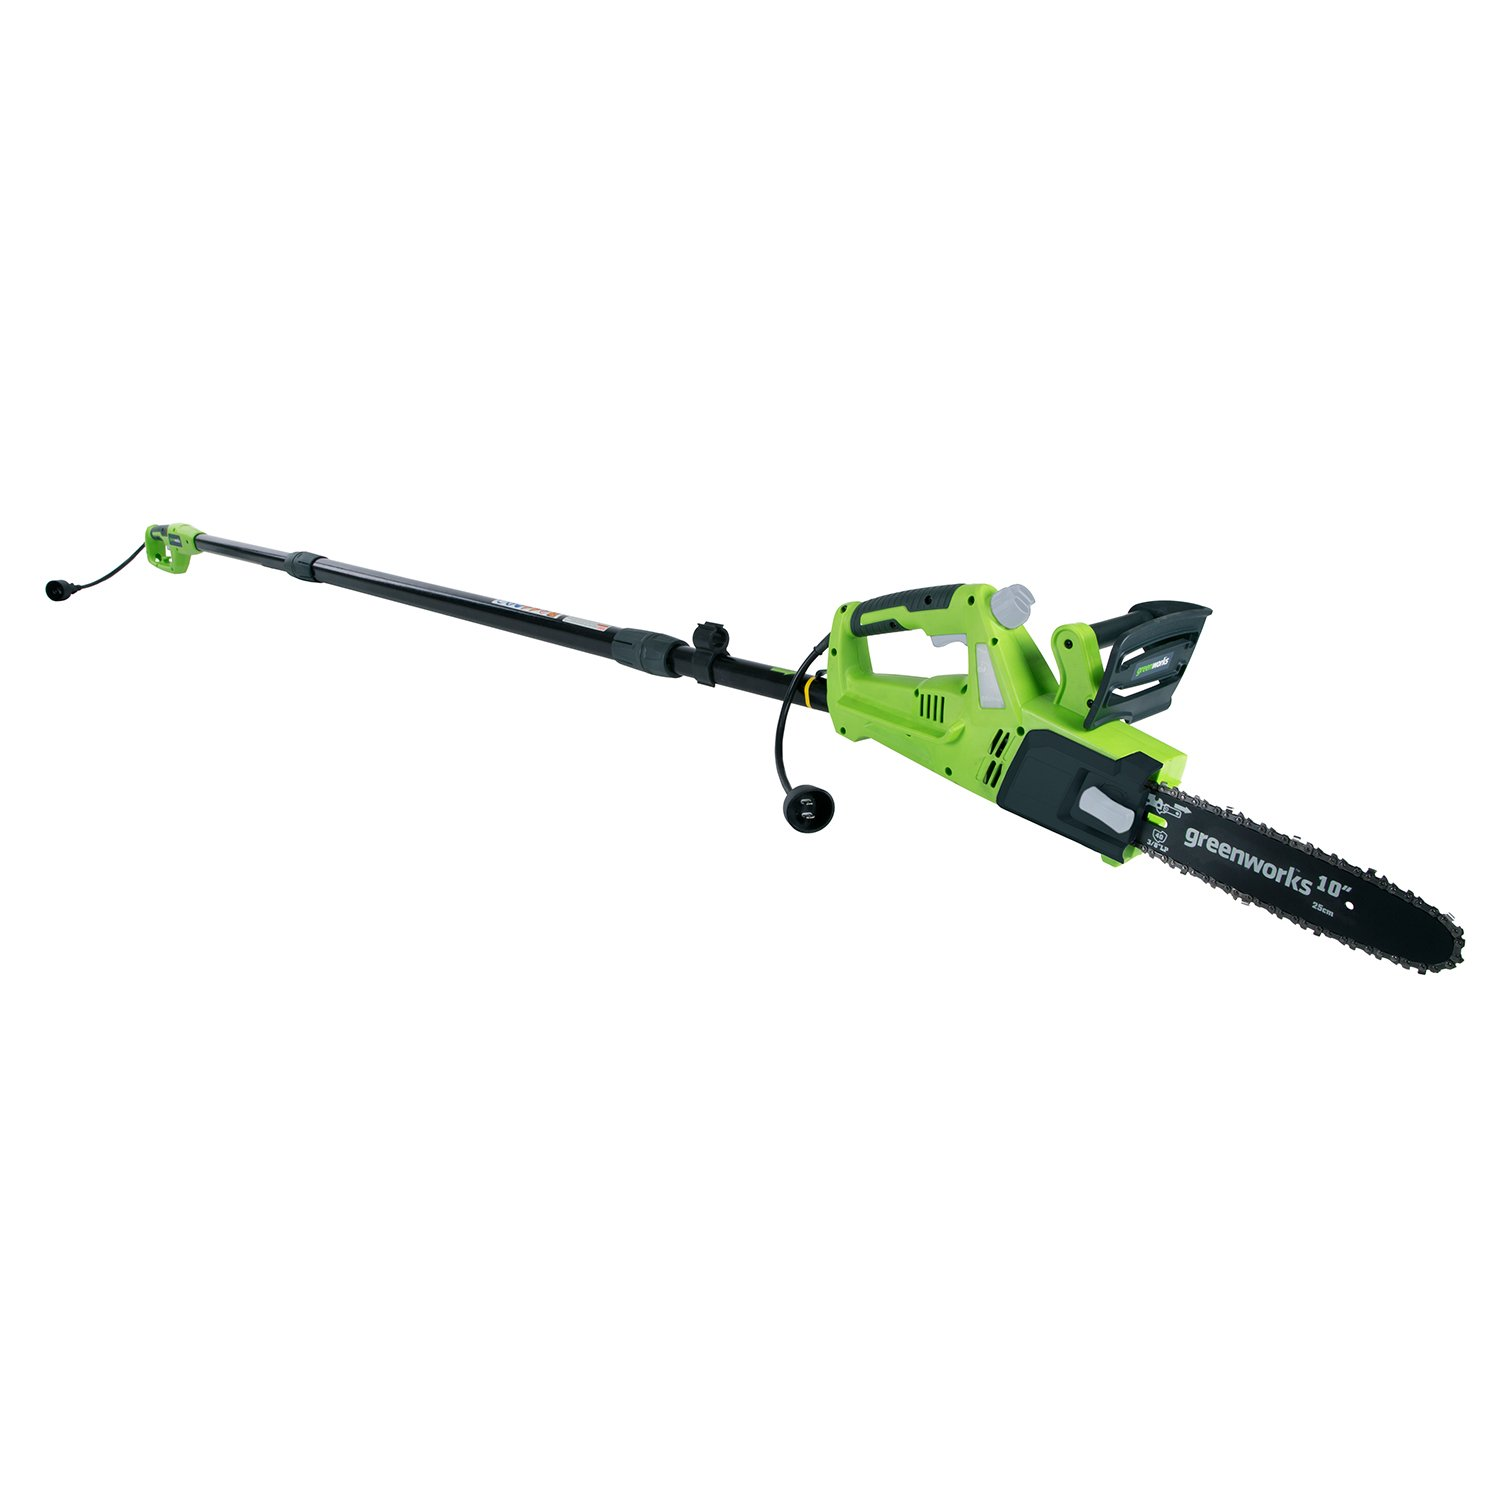 Greenworks 9.3' 6 Amp Corded Chainsaw with Pole Saw Attachment PSCS06B00